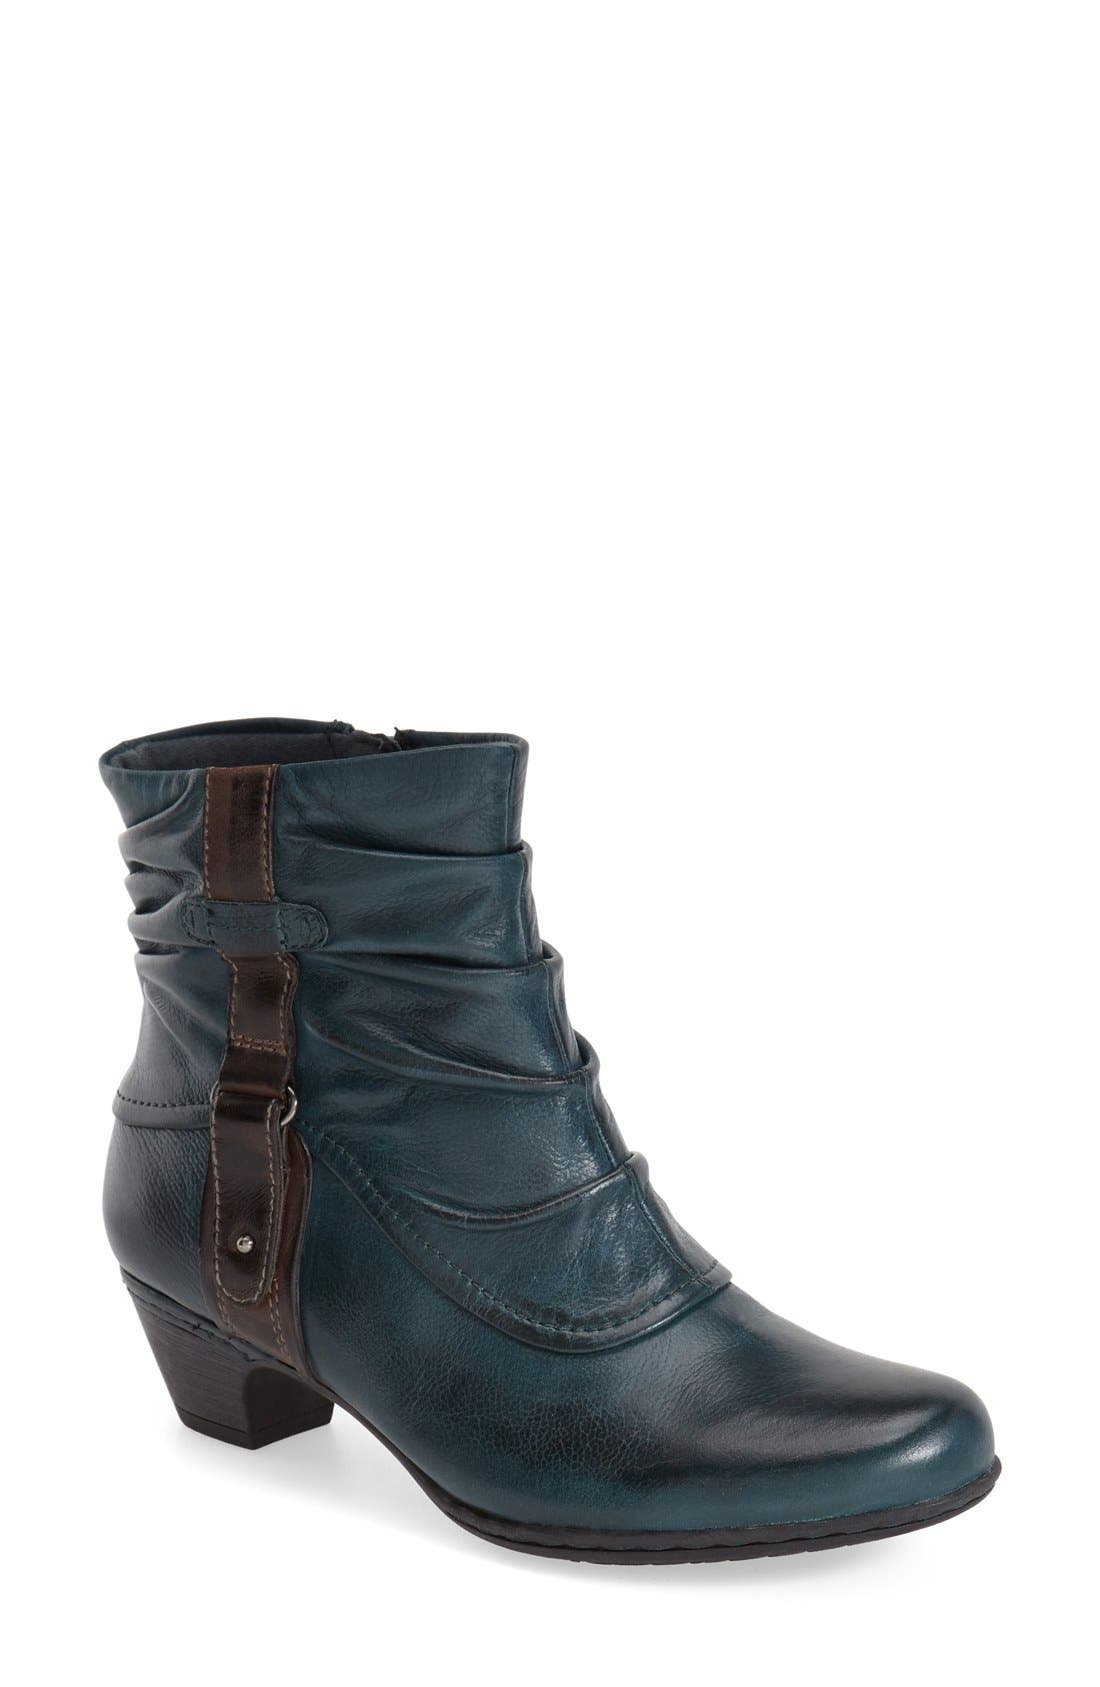 'Alexandra' Boot,                         Main,                         color, BLUE/ TEAL LEATHER